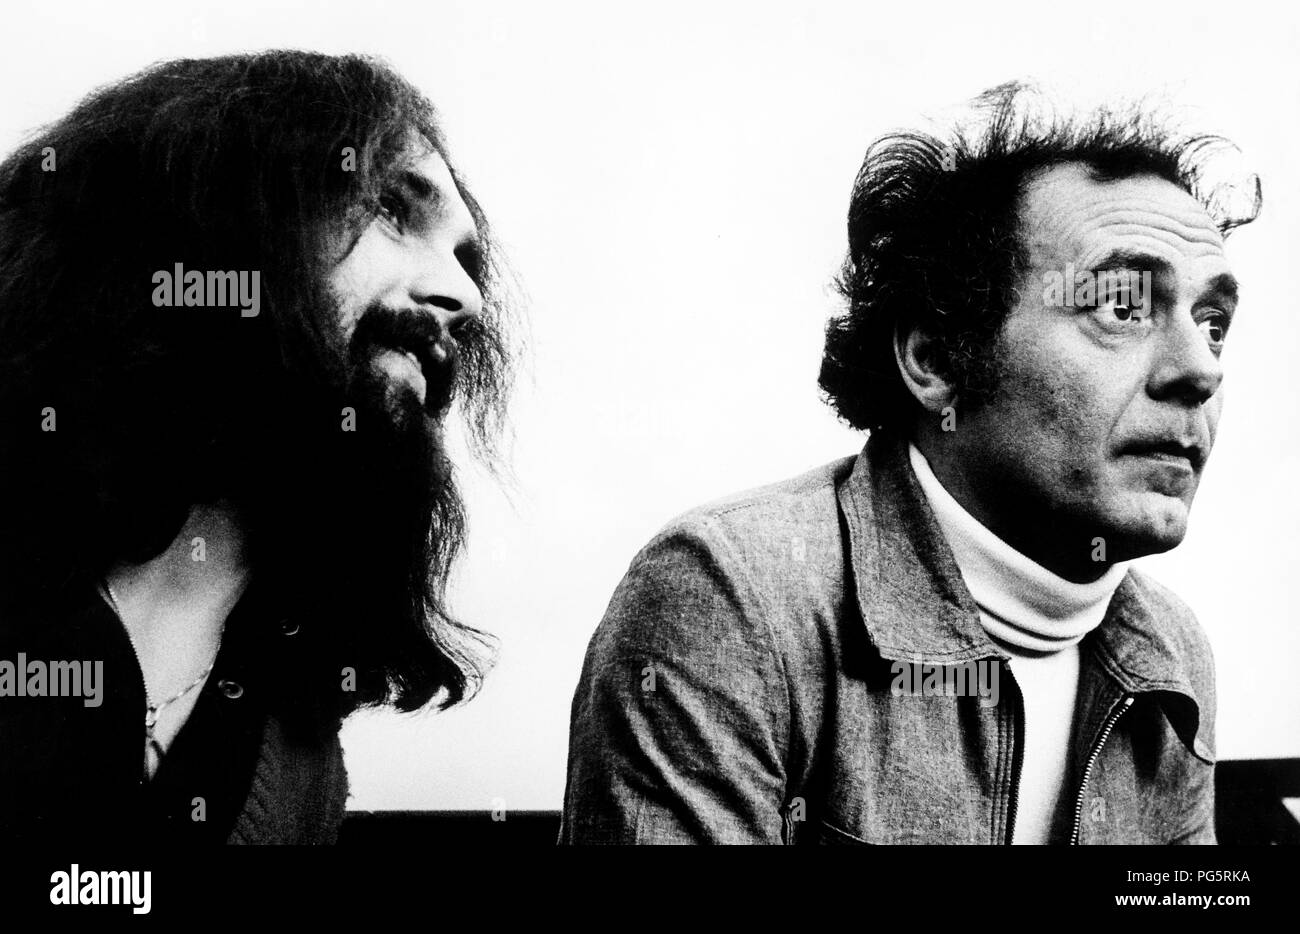 roberto gargamelli, pietro valpreda during the trial of the Piazza Fontana massacre, 1972 - Stock Image